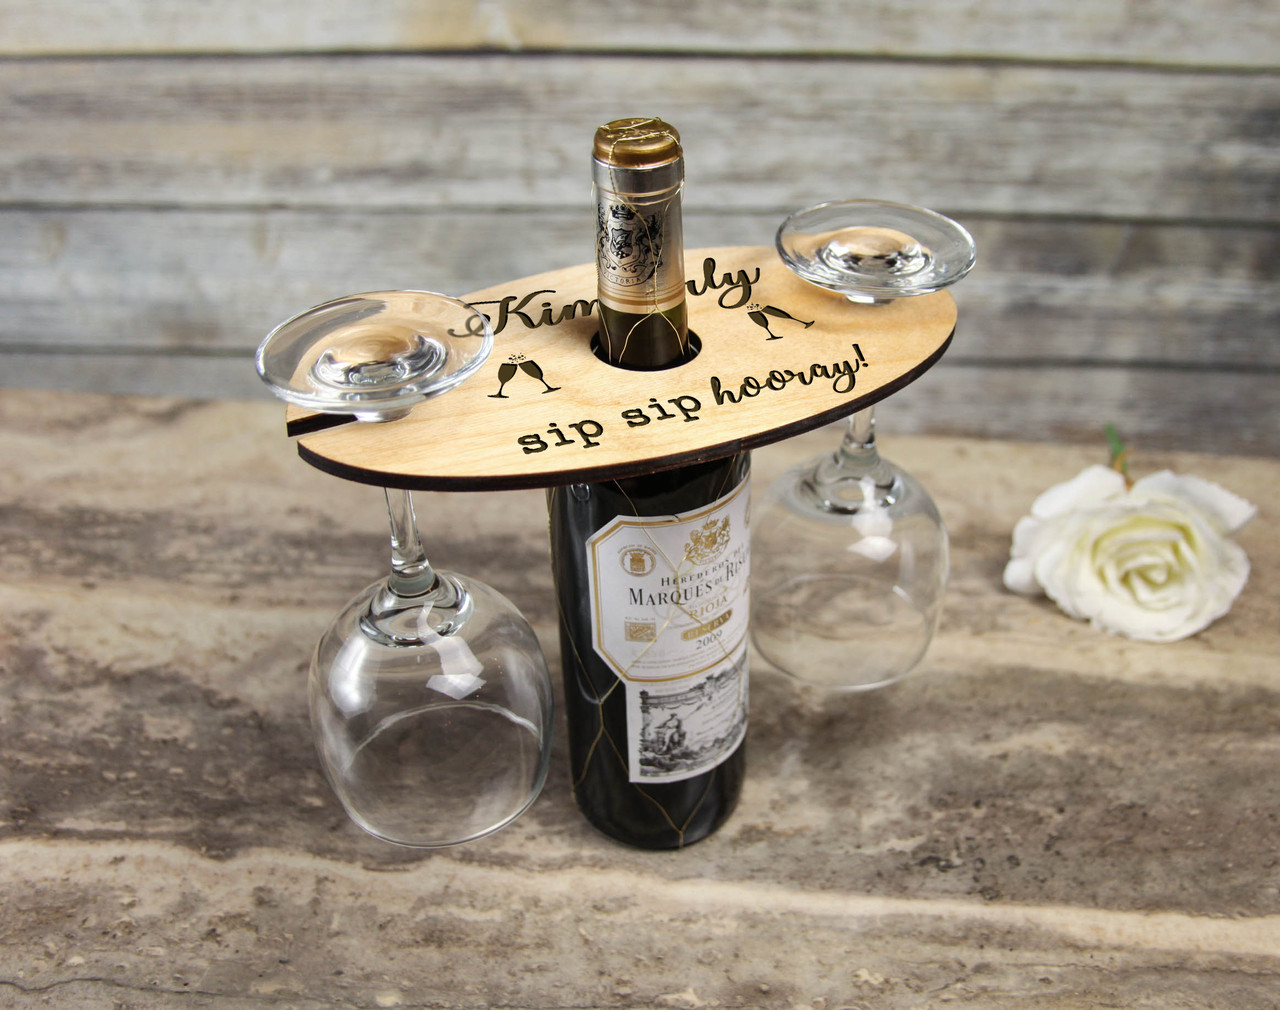 Personalized Wine Caddy & Glass Holder - Sip Sip Hooray